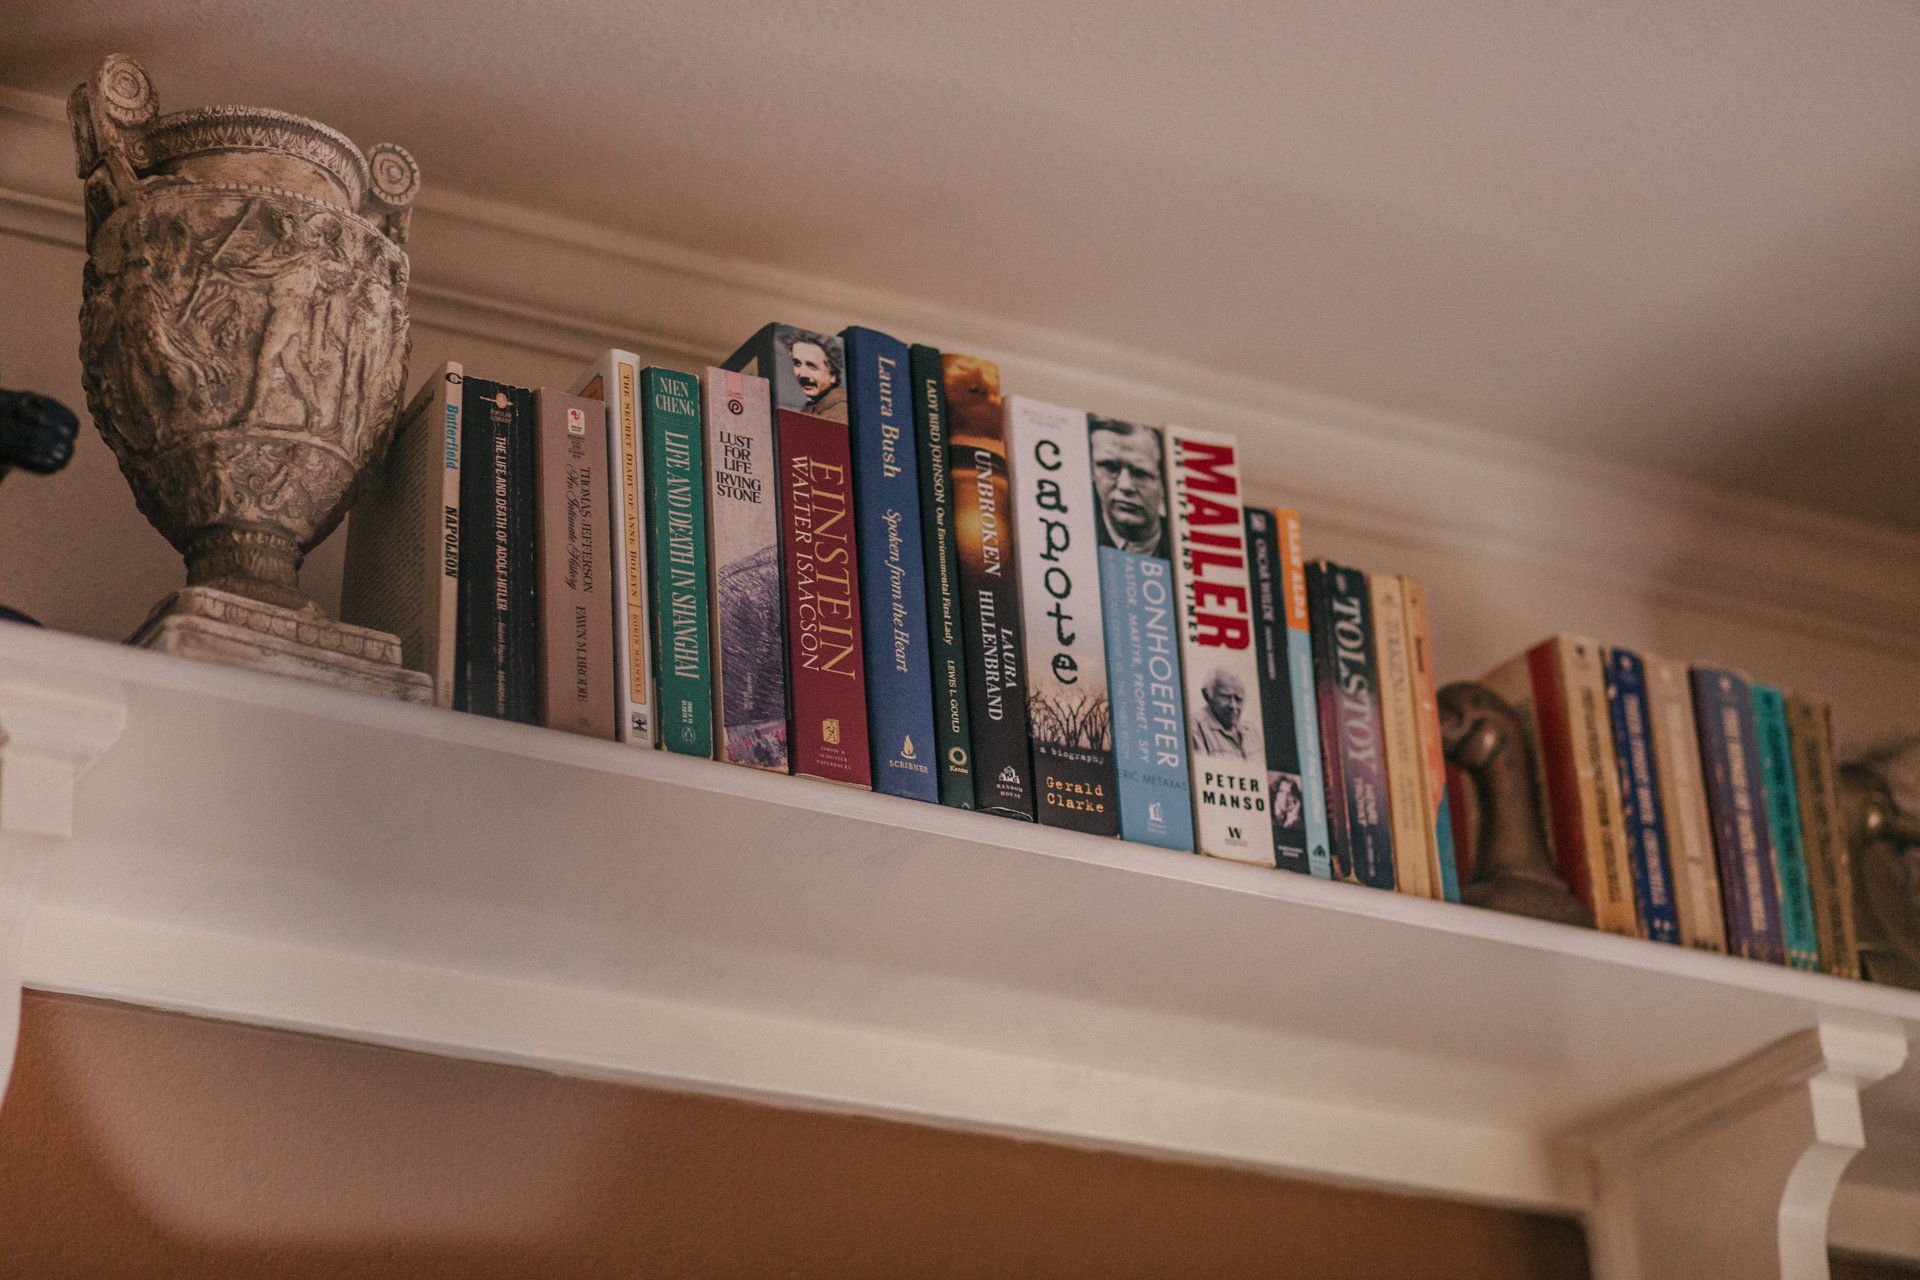 ...and more books. Each room, stocked.